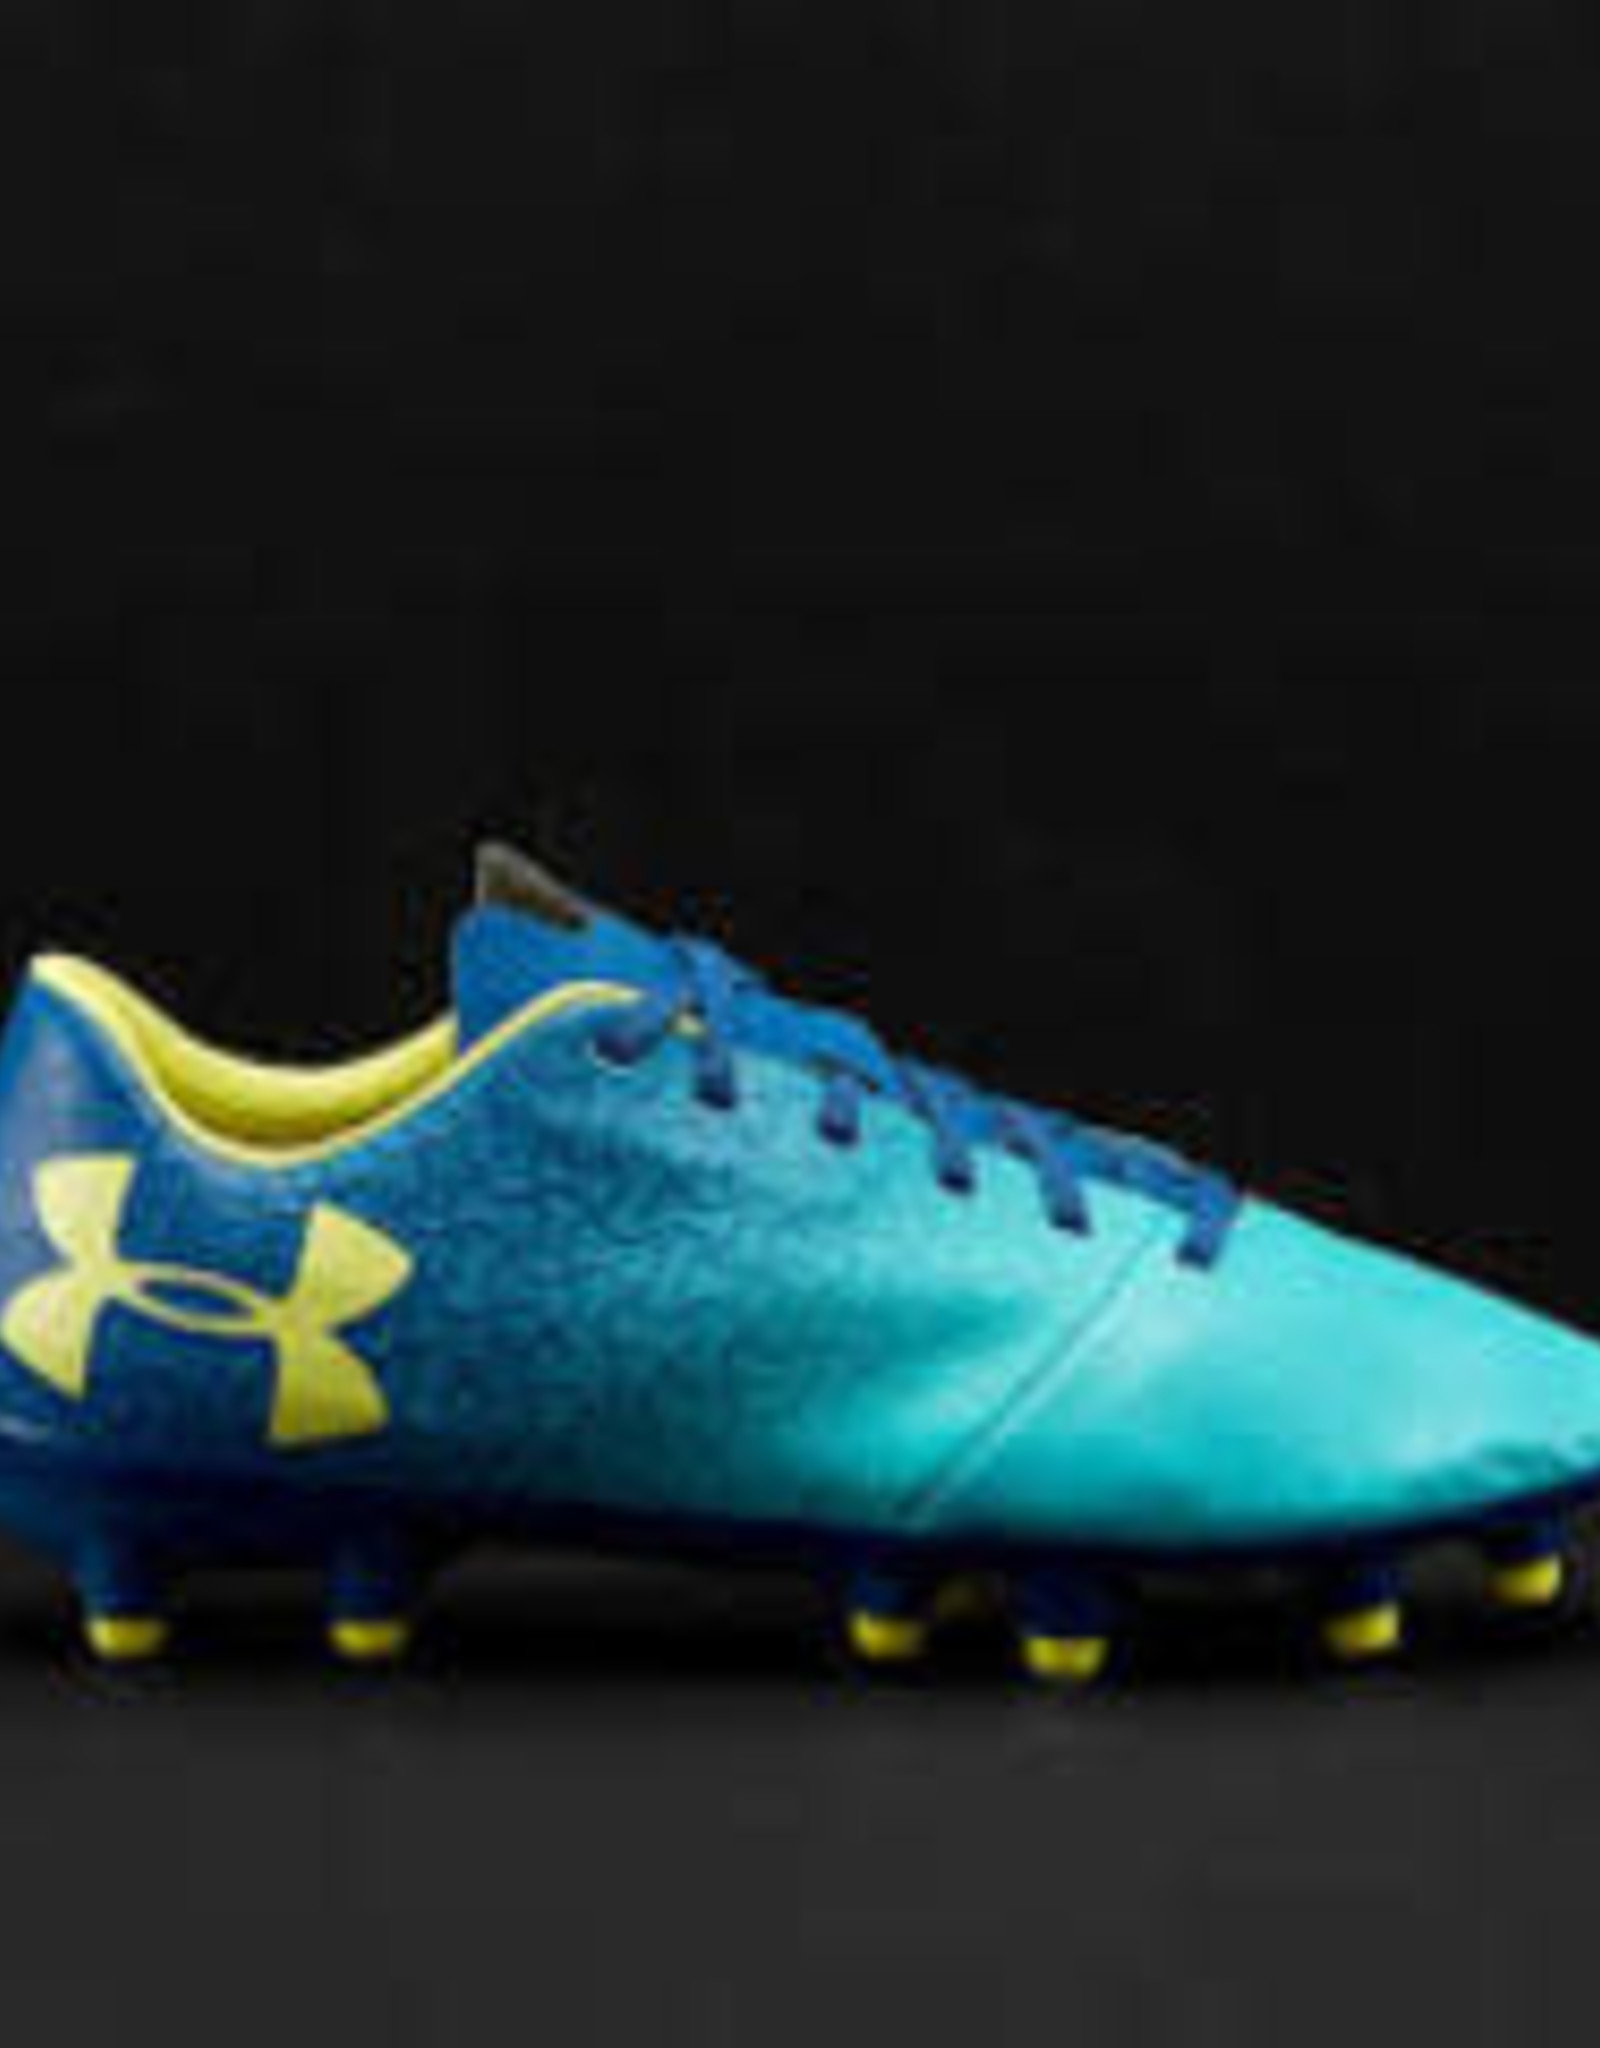 Under Armour UA Soulier Magnetico(9) TF Blu/YL